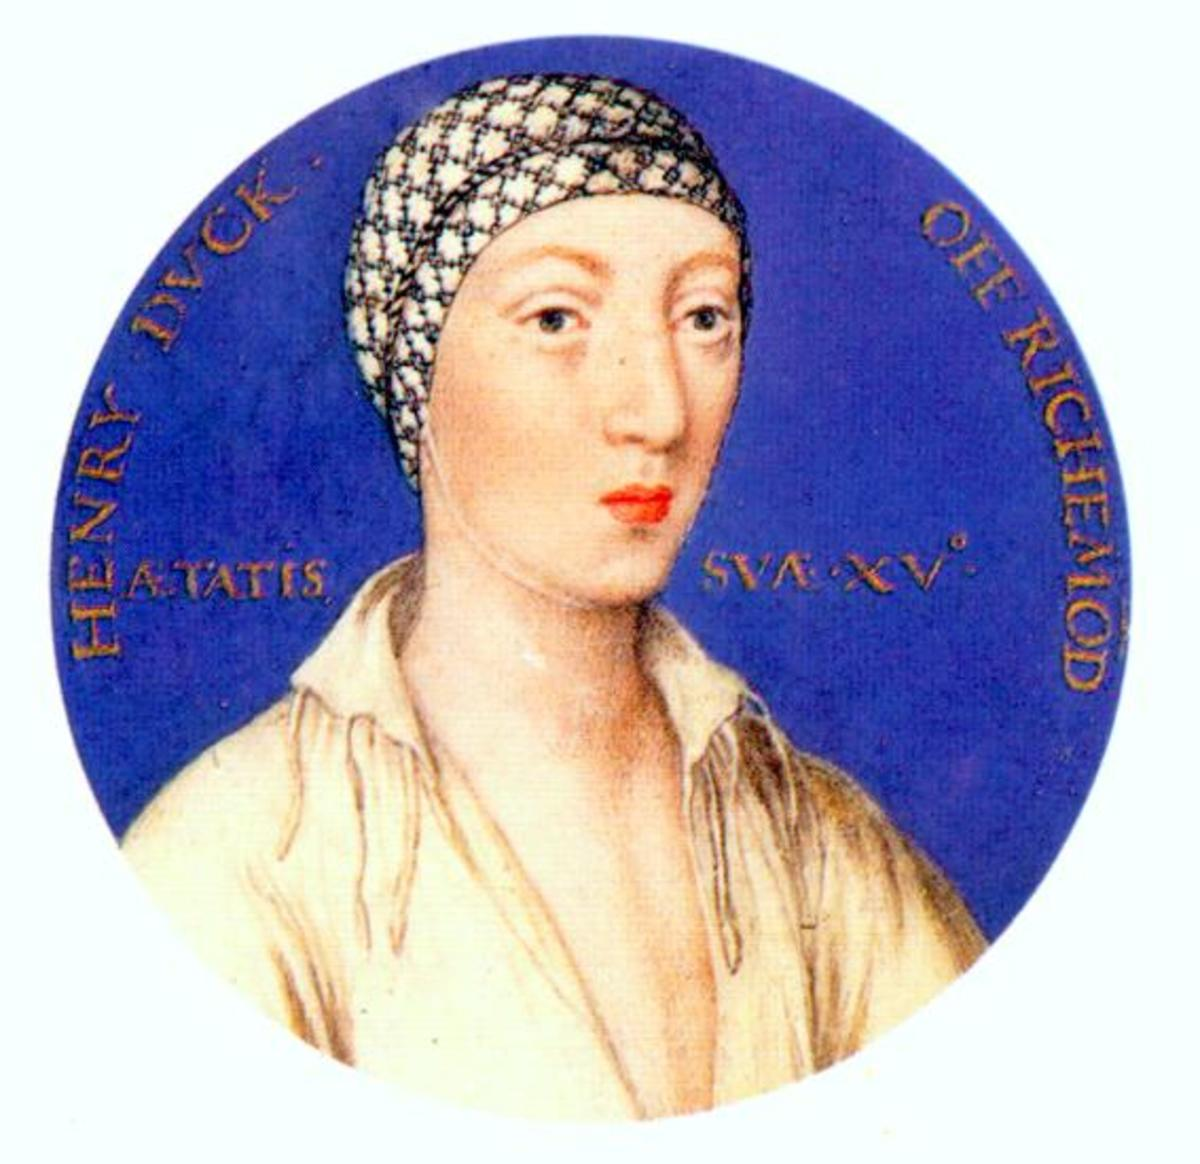 The young Henry FitzRoy